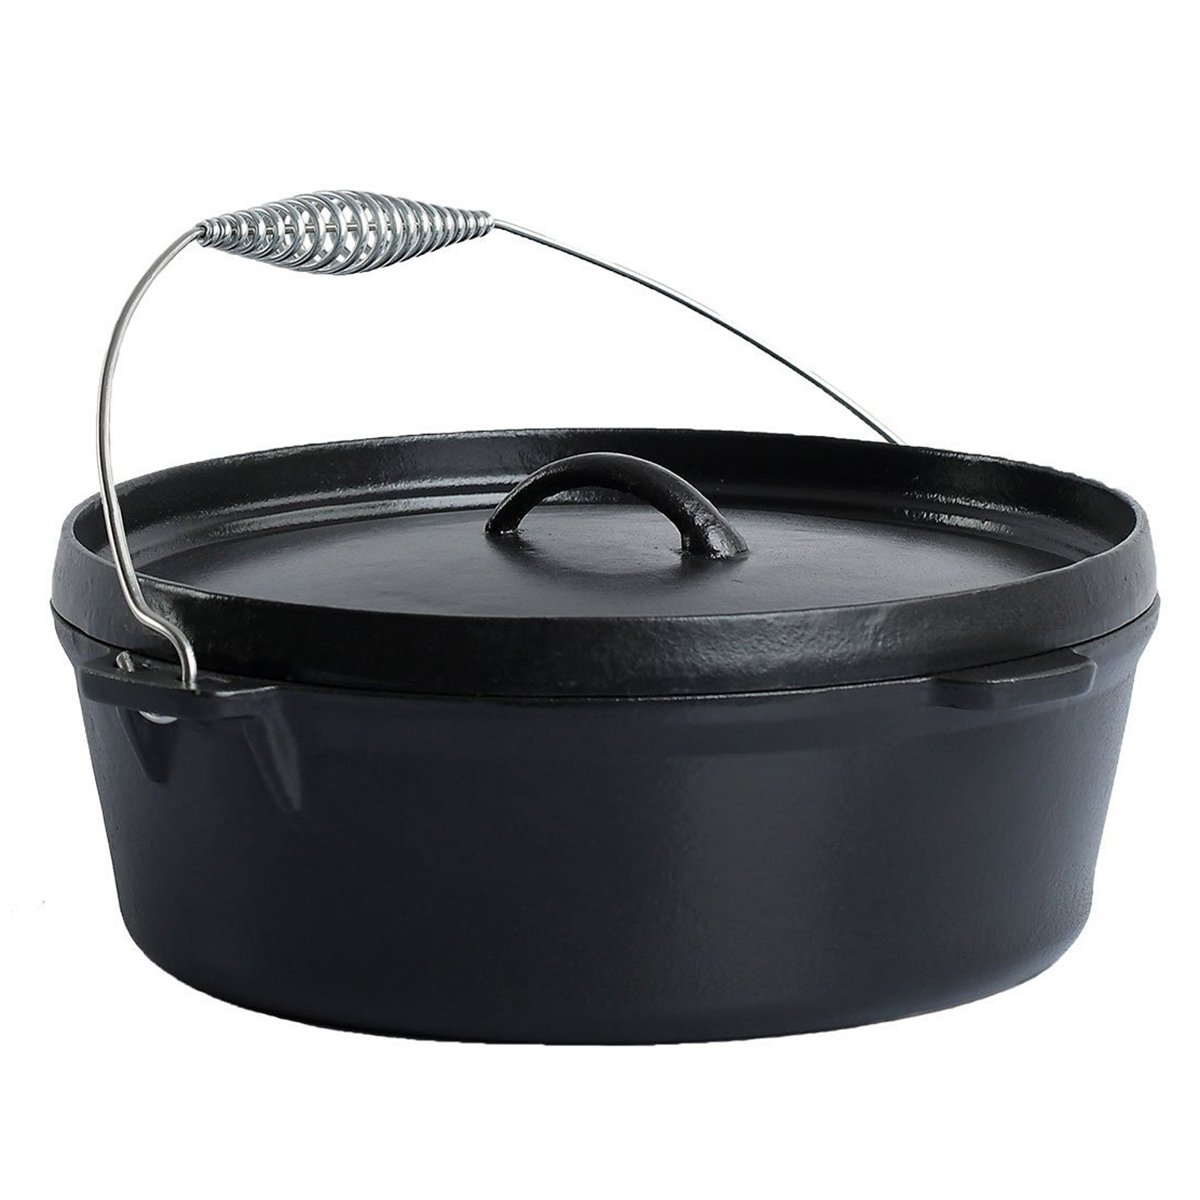 Kamado Joe KJ-DO Cast Iron Dutch Oven